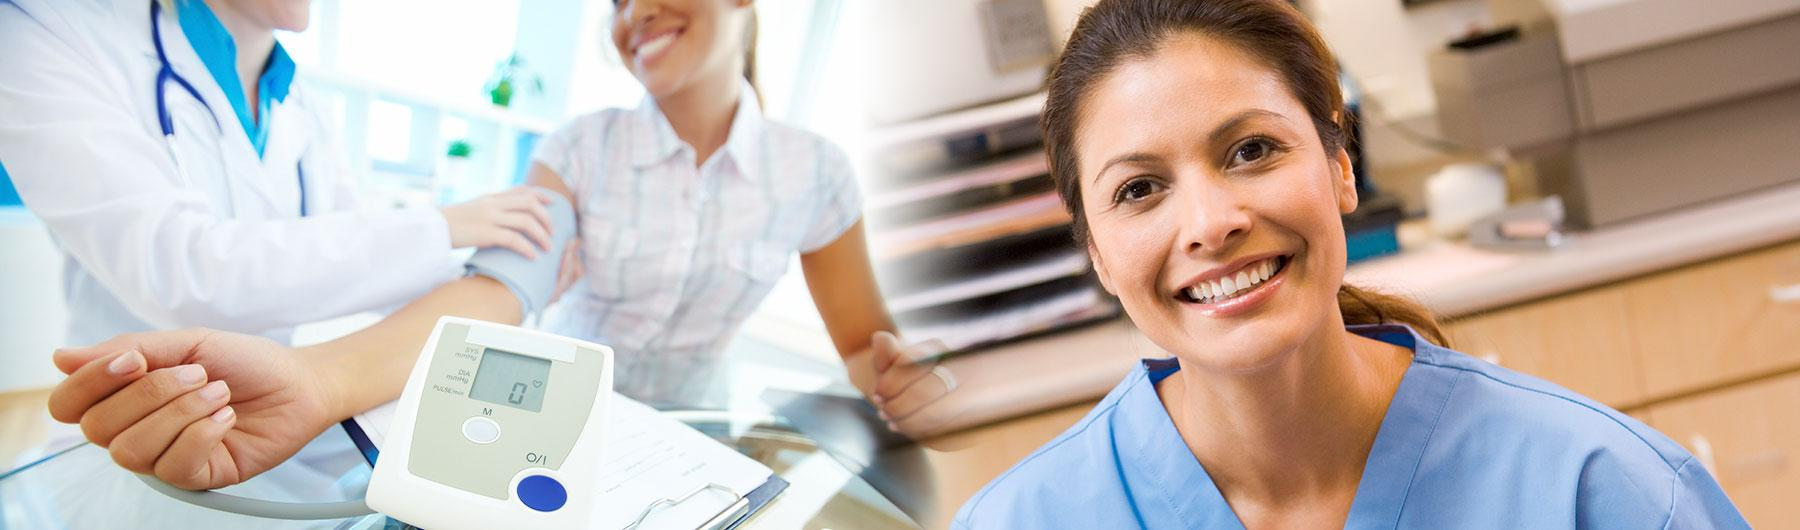 Medical Assistant Certificate Program Common Questions